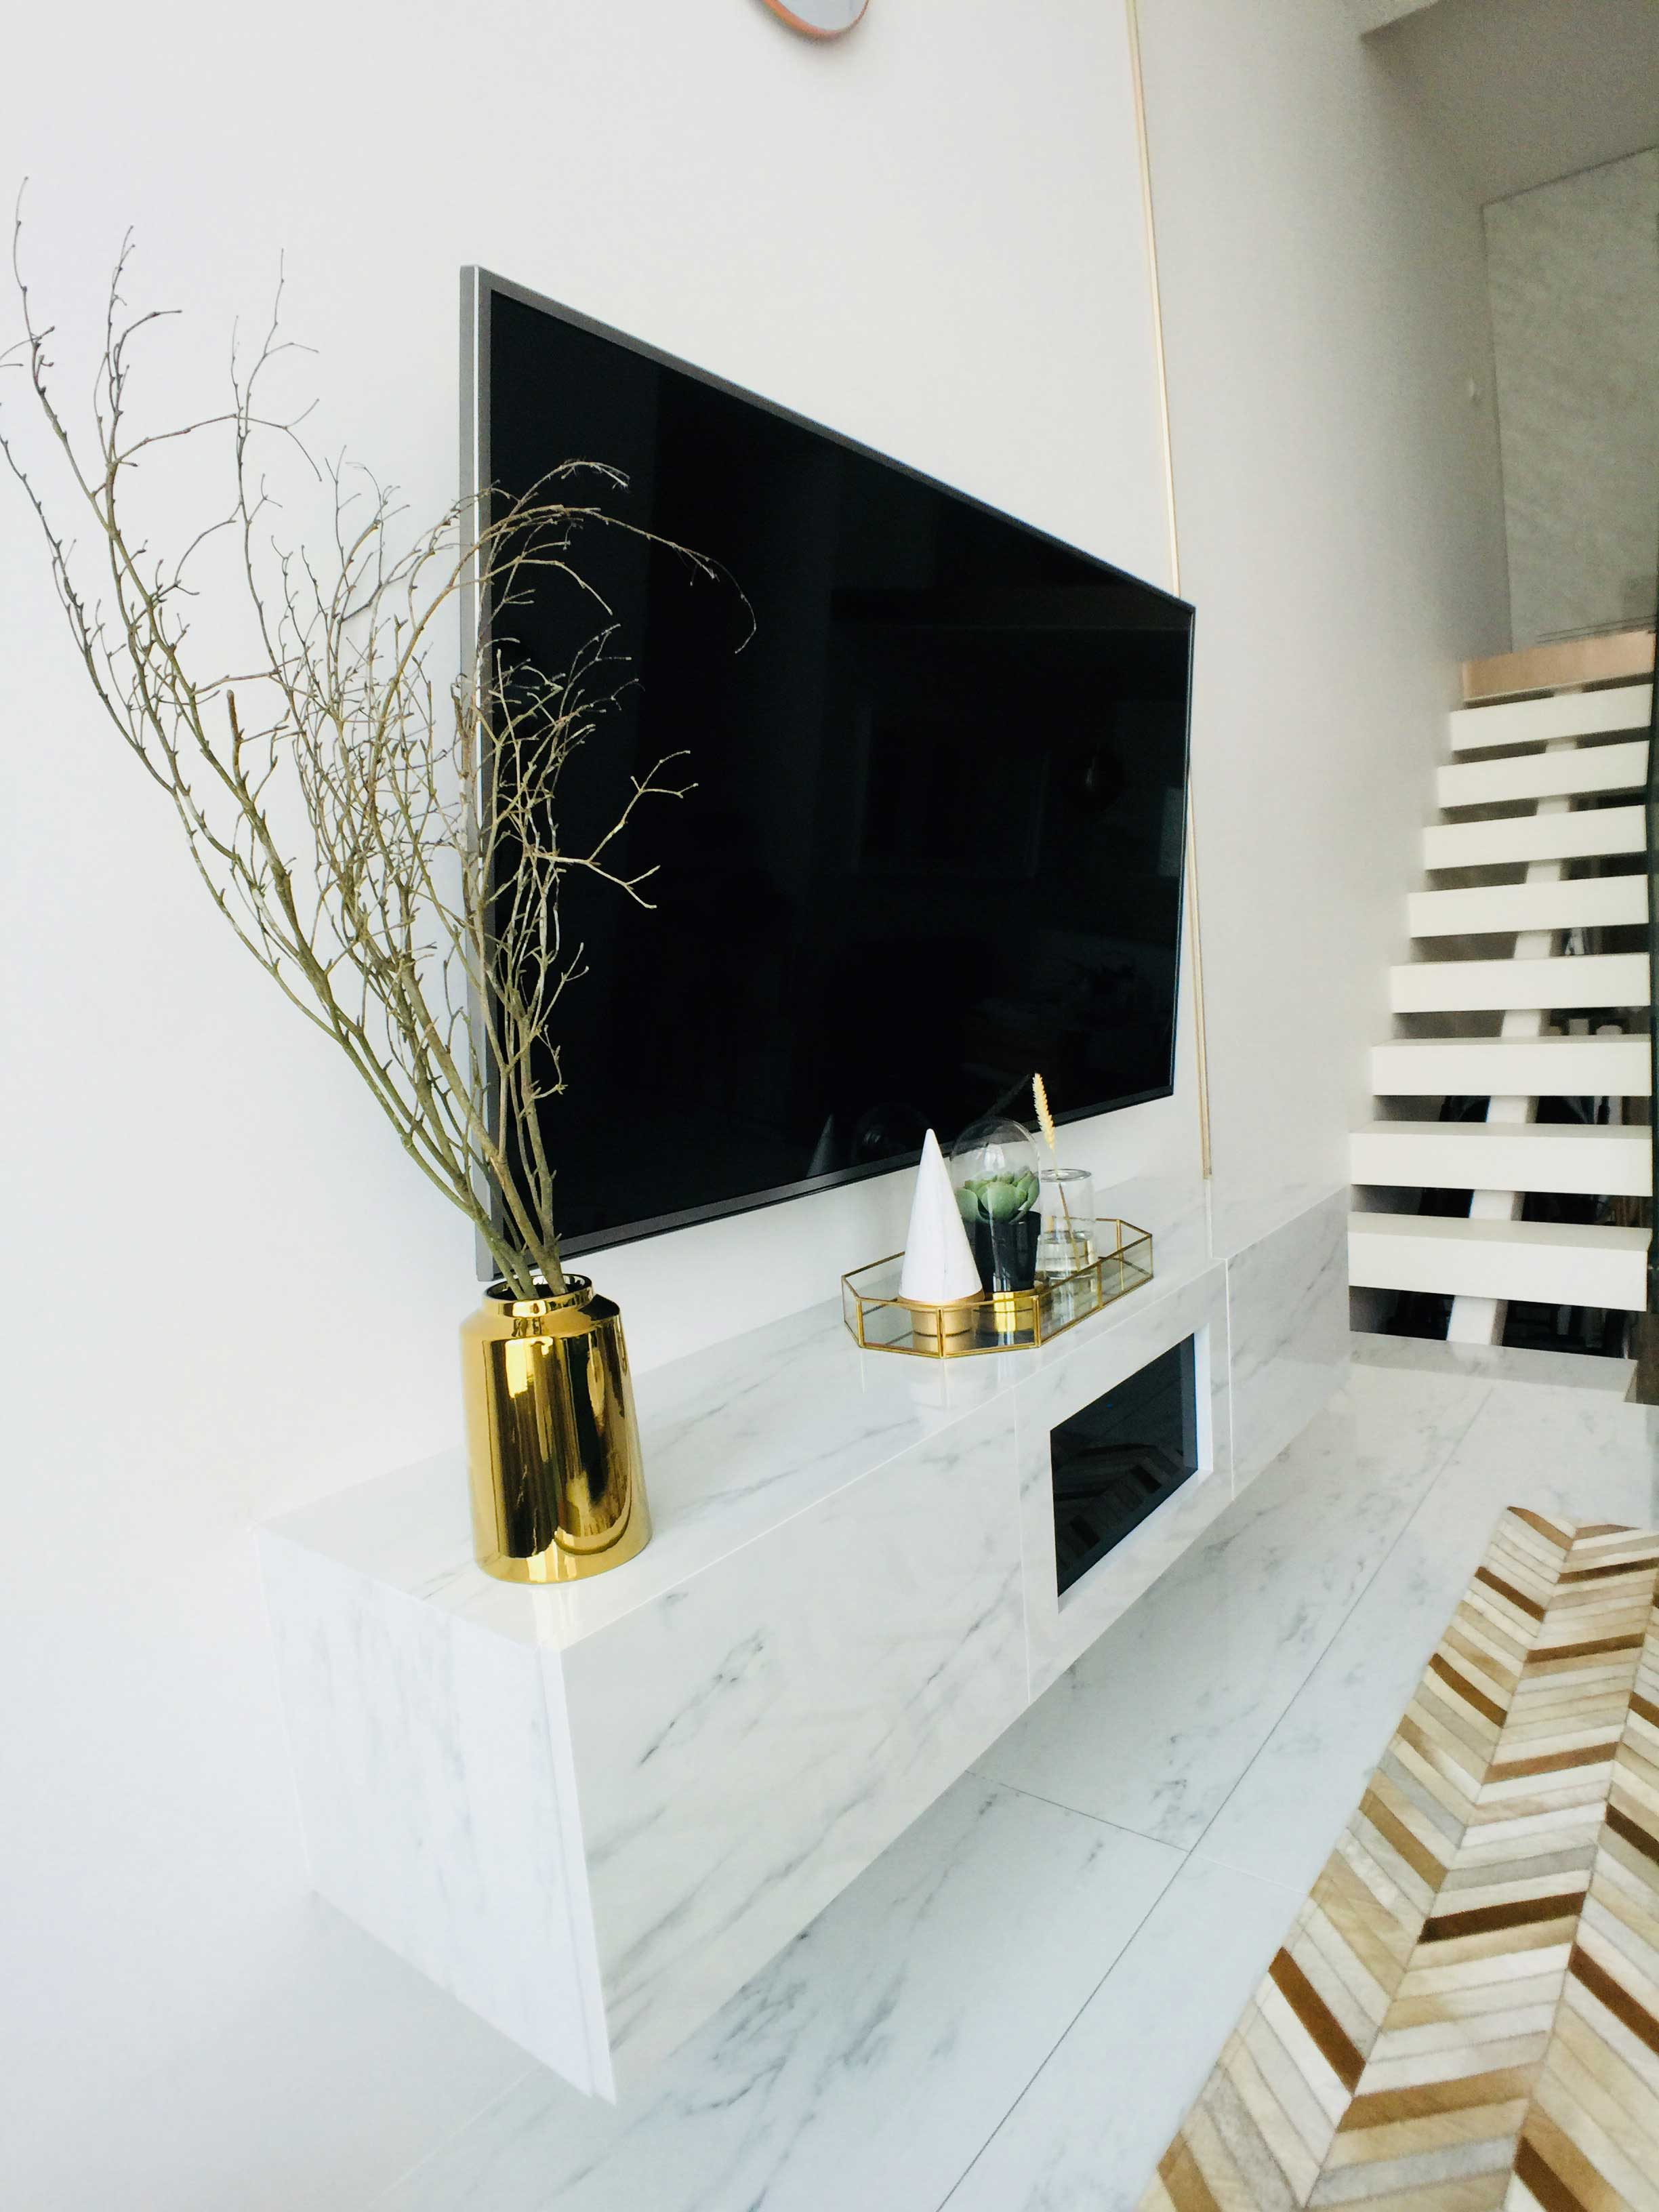 Marble textured laminate complements gold accent perfectly.